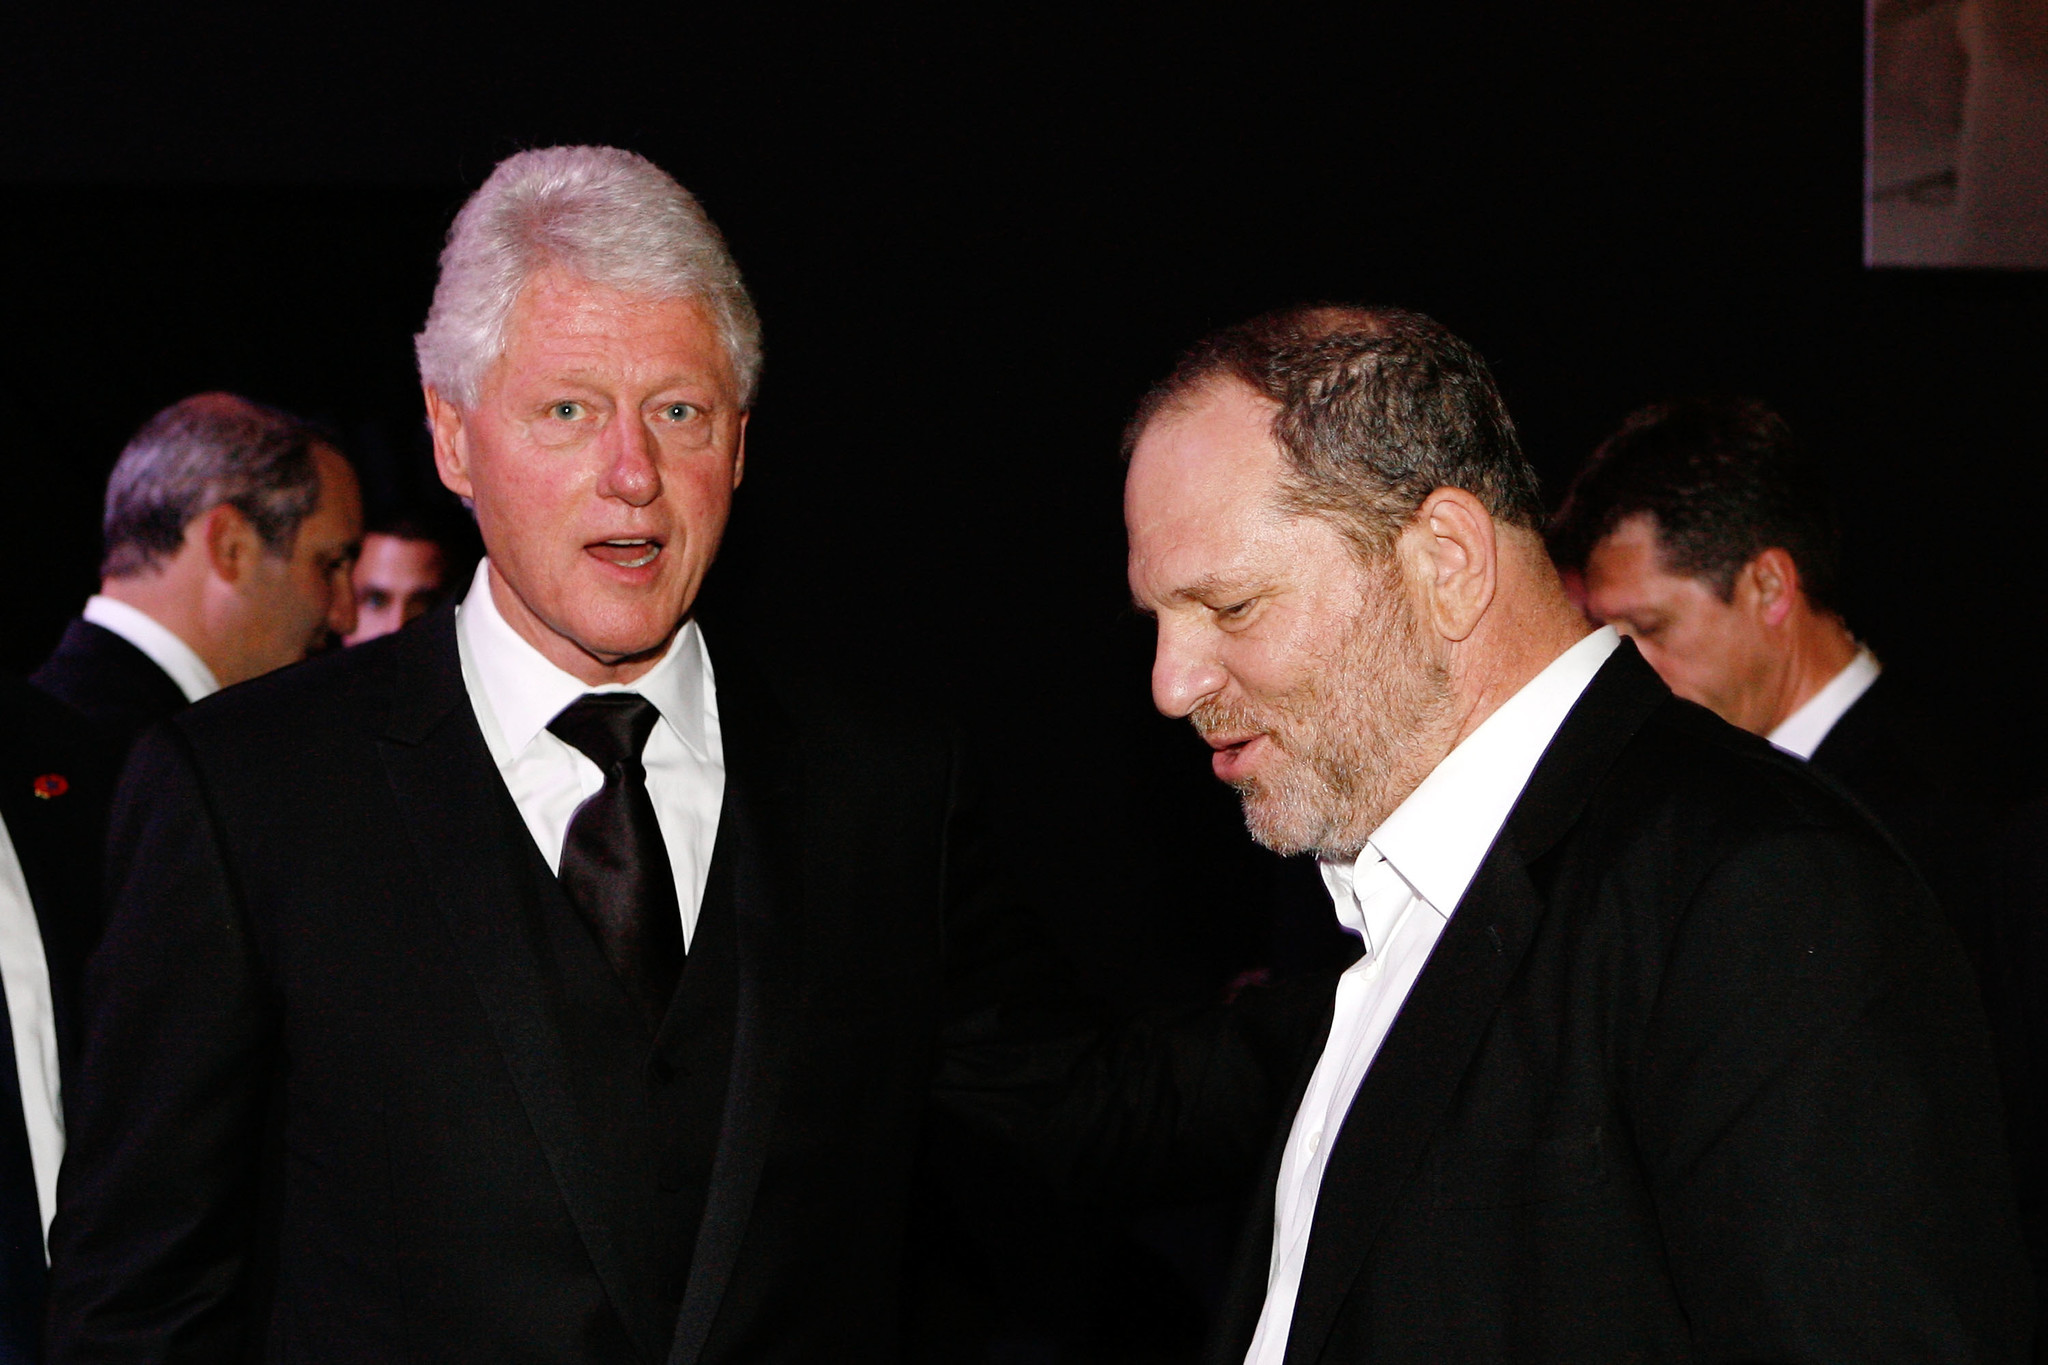 Harvey Weinstein's lawyers ask for mistrial after prosecutors link him to former President Bill Clinton